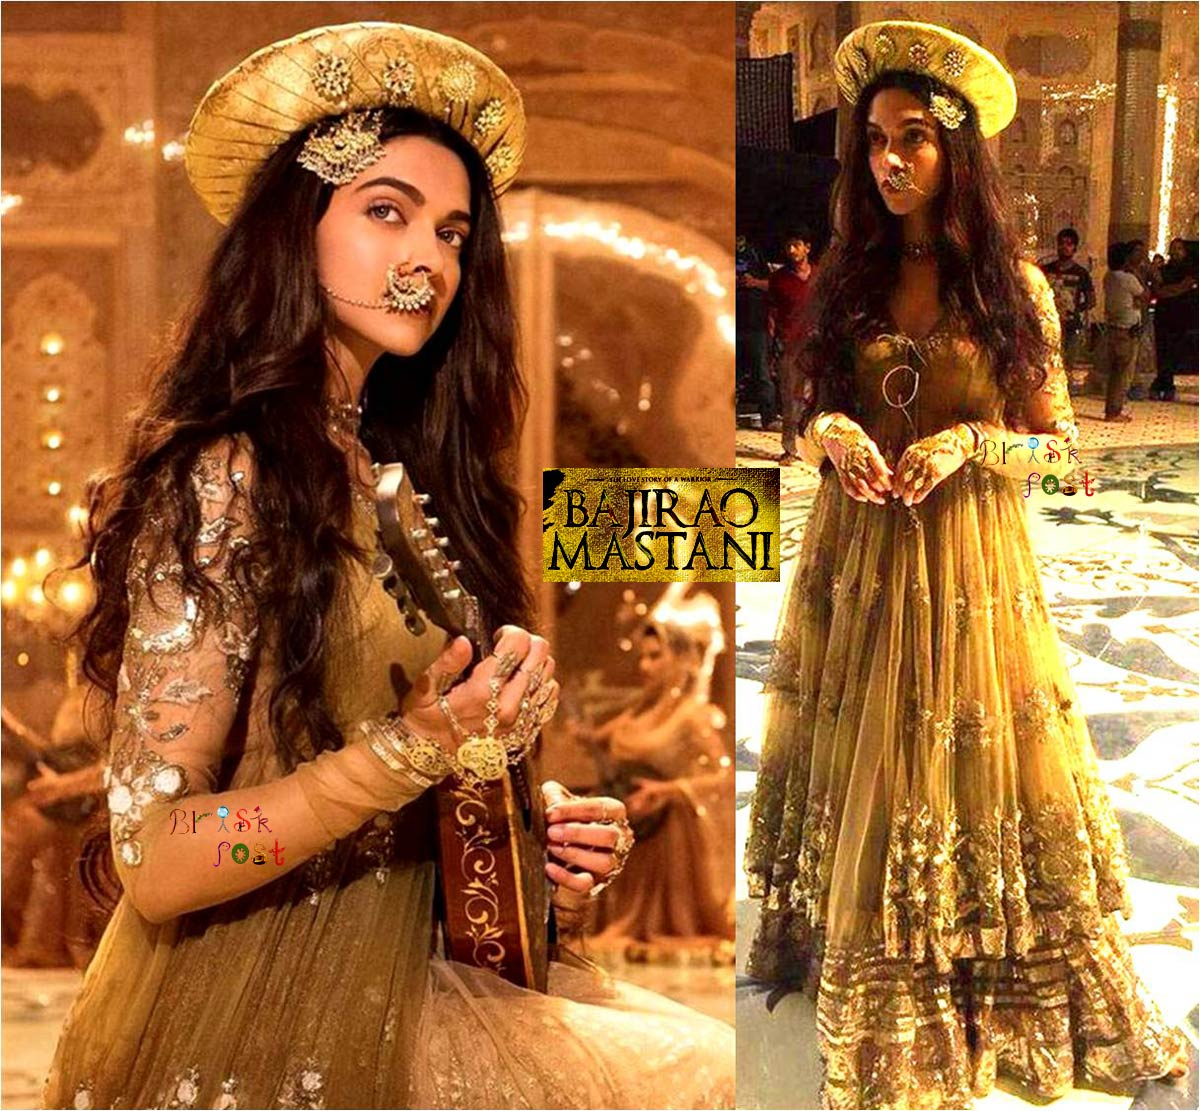 Deewani Mastani Deepika Padukone of Bajirao Ranveer Singh as Golden Apsara in Mughal Princess